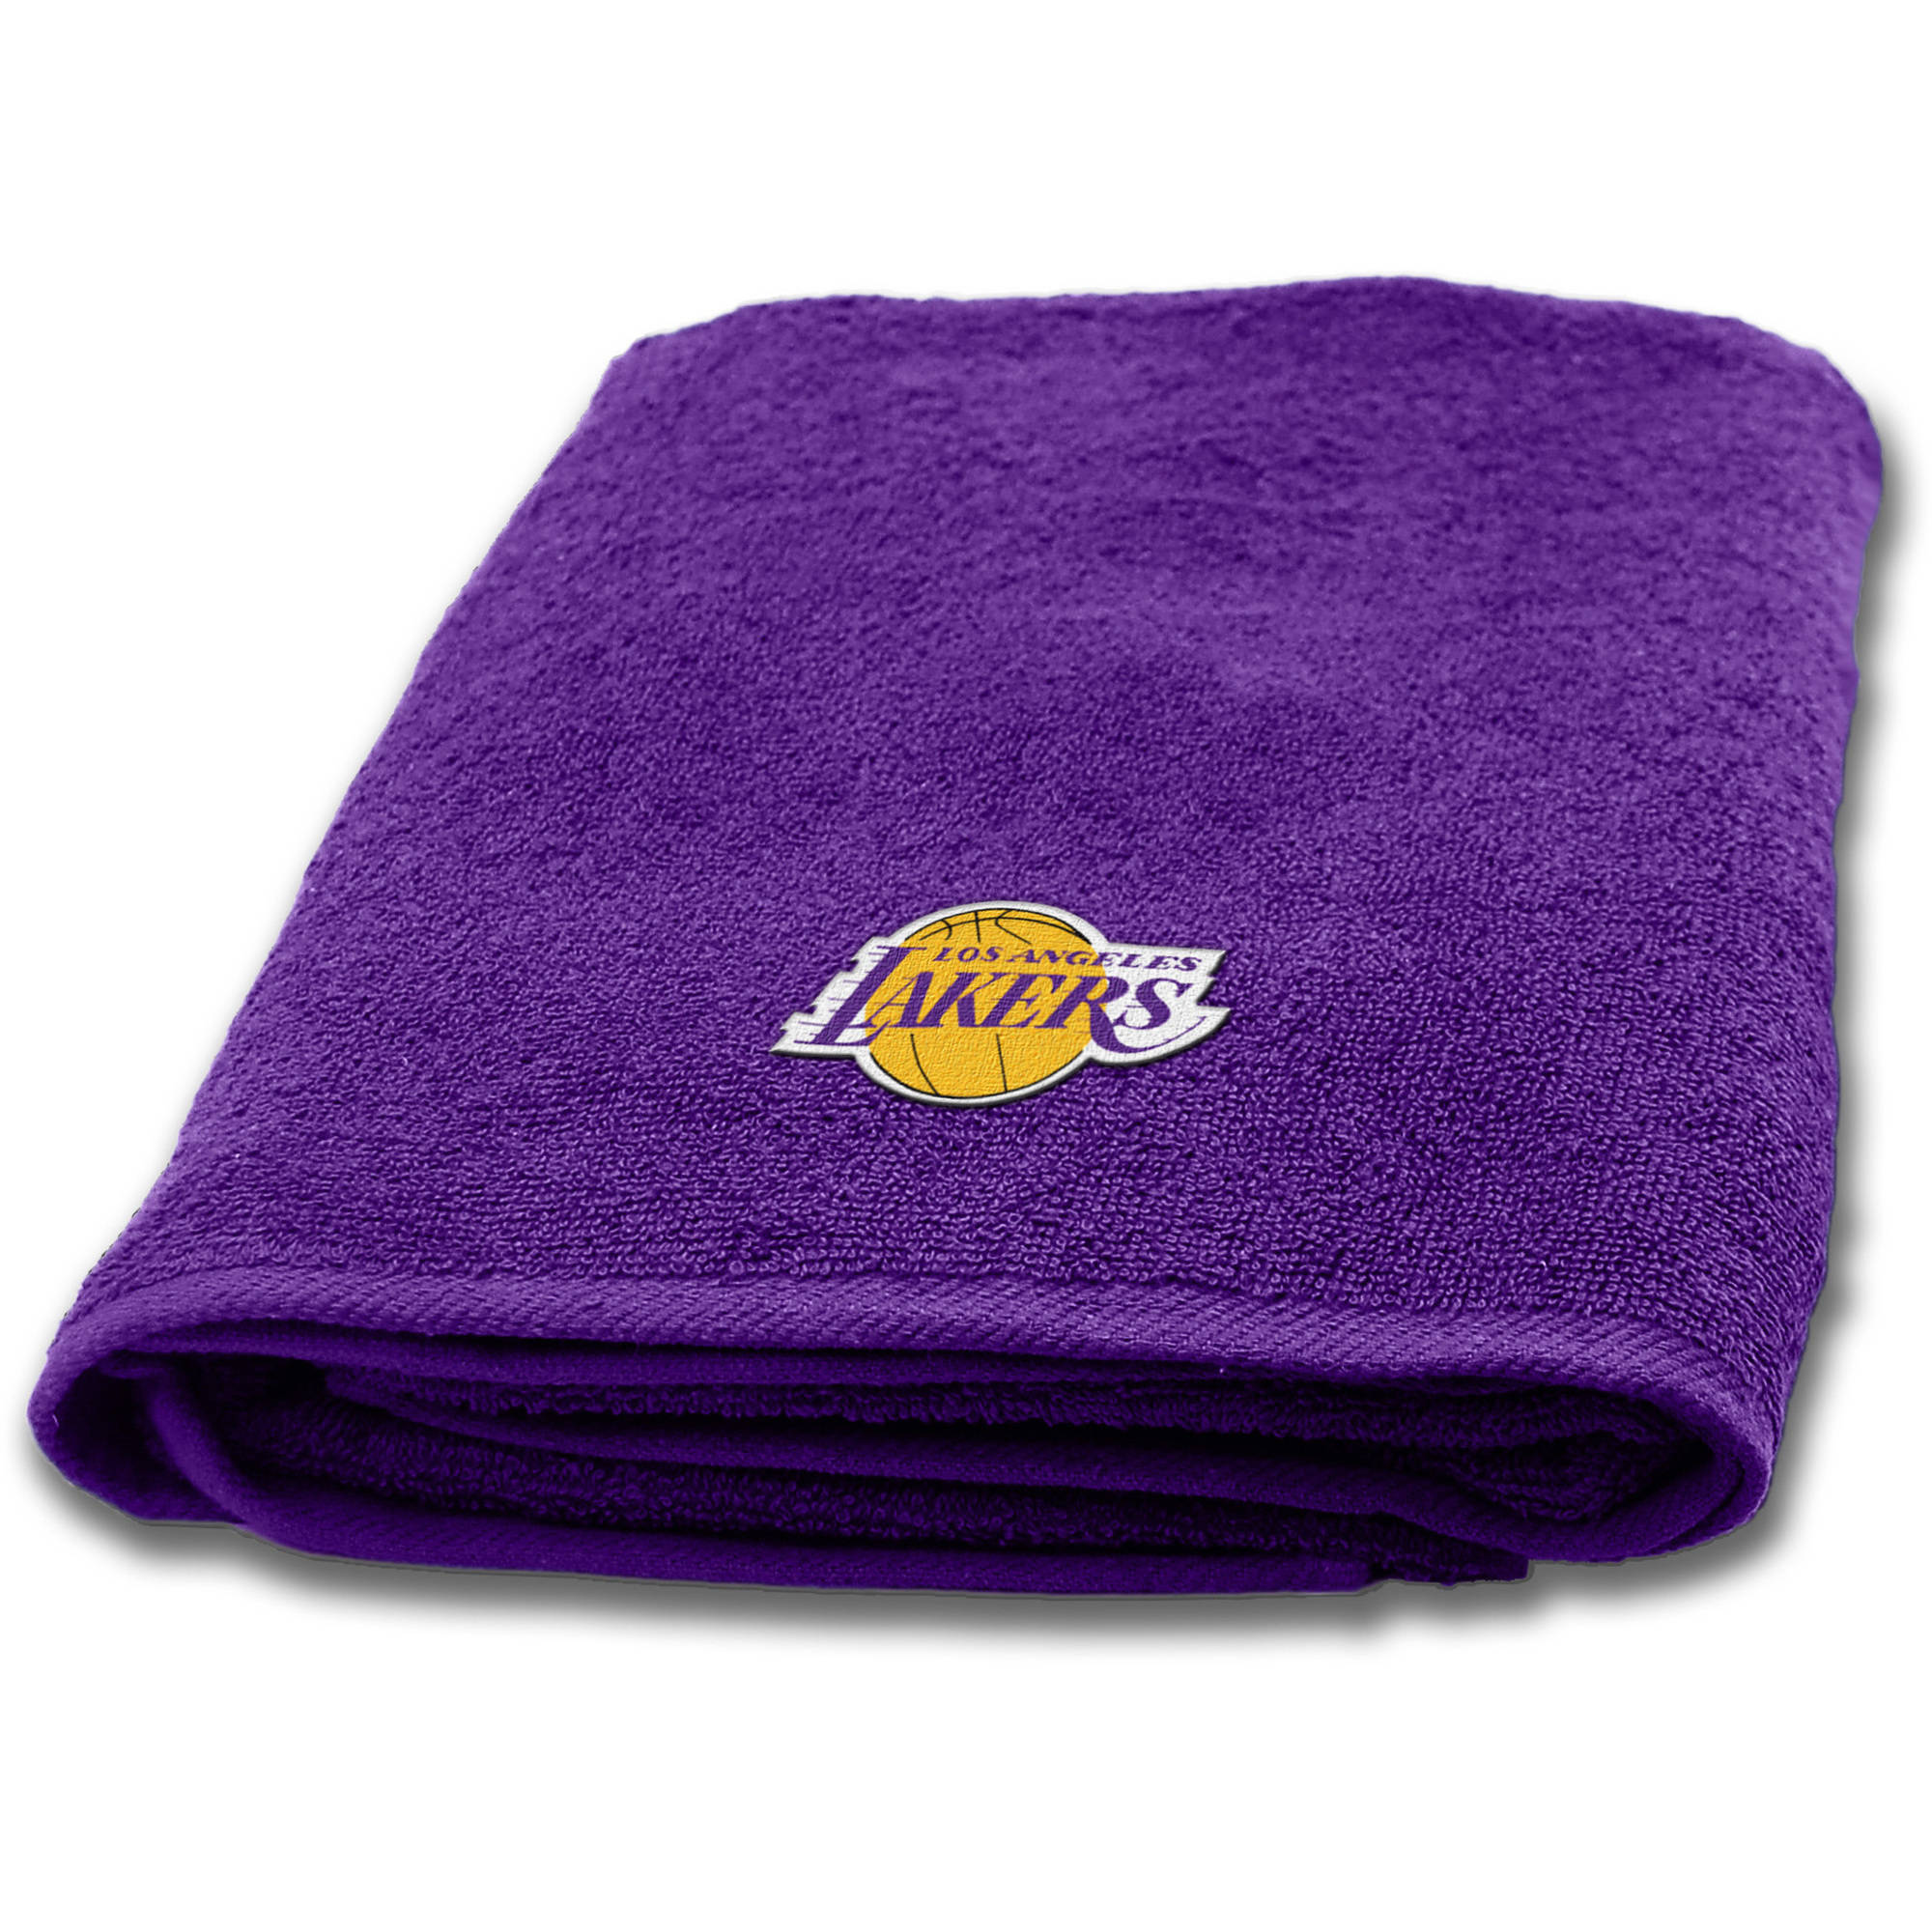 "NBA Los Angeles Lakers 25""x50"" Applique Bath Towel"